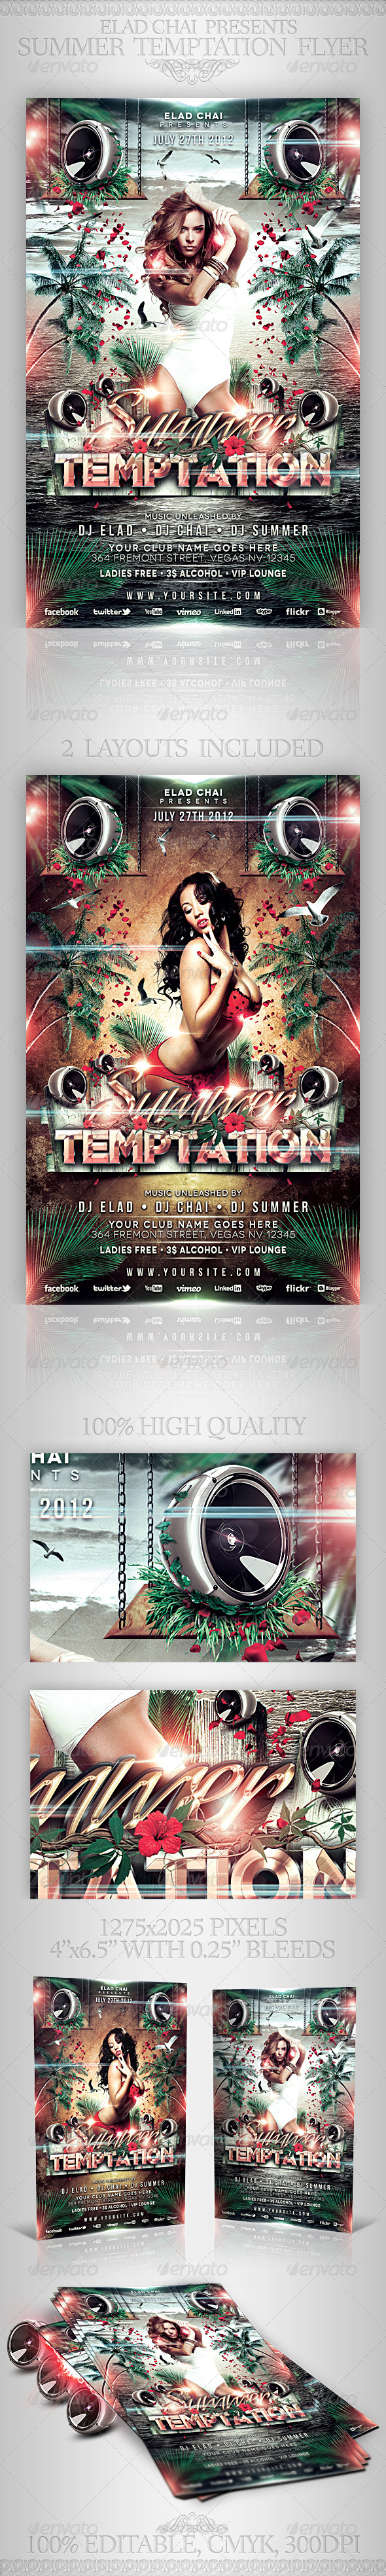 GraphicRiver Summer Temptation Party Flyer Template 2657895